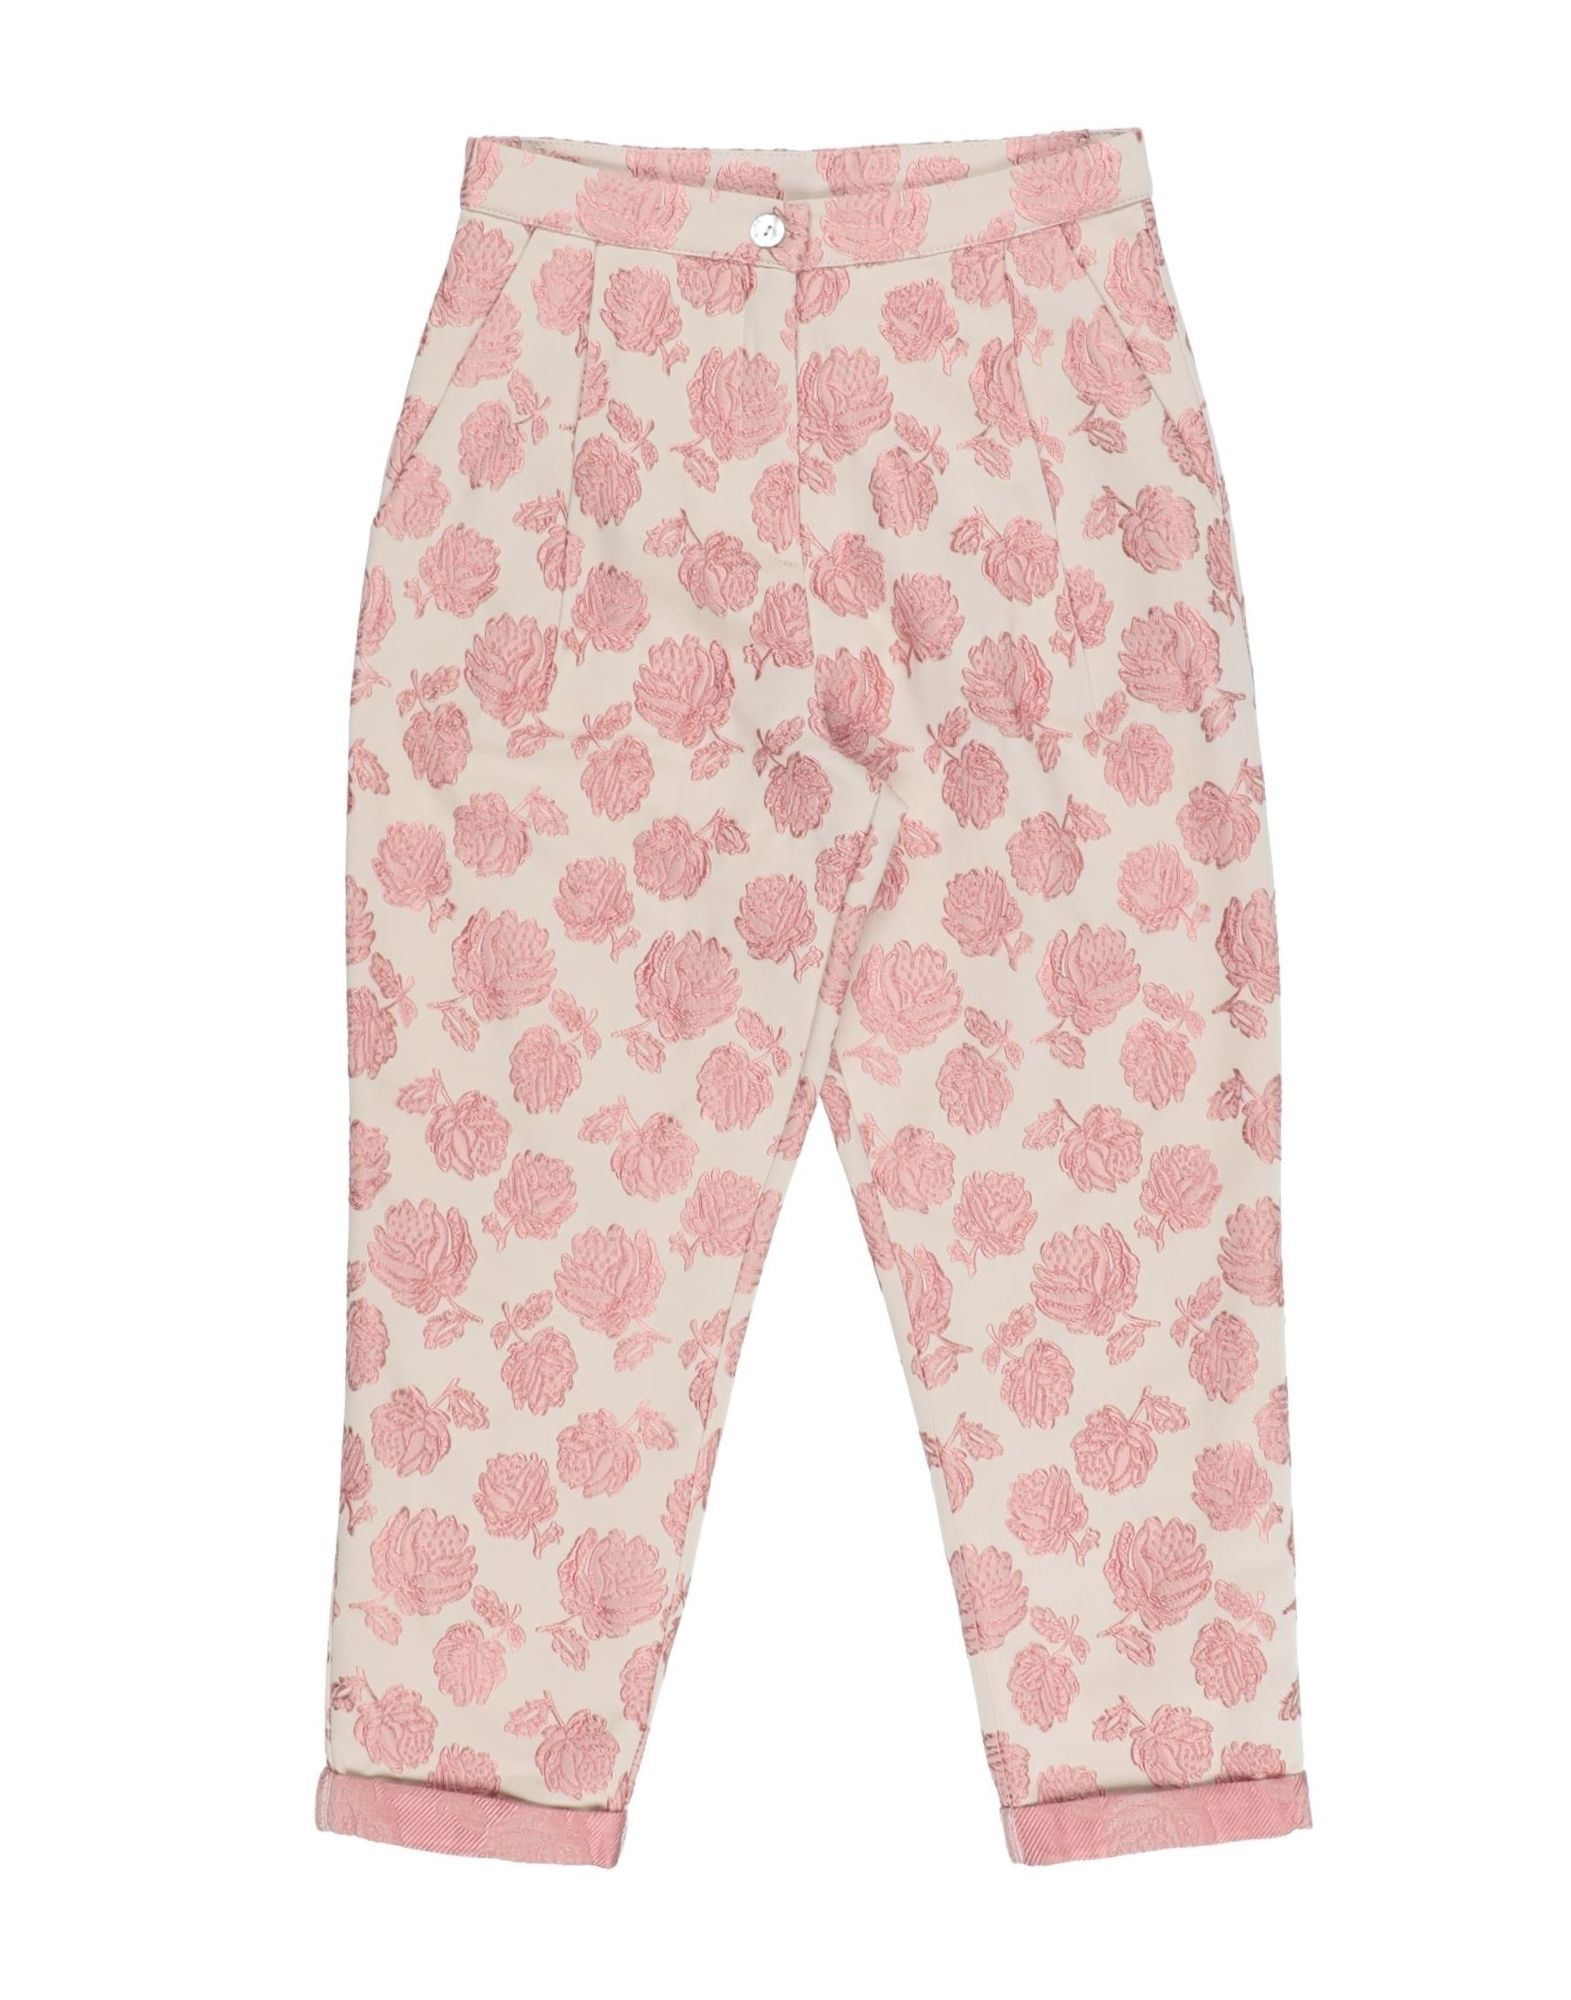 Caffe' D'orzo Kids' Casual Pants In Pink